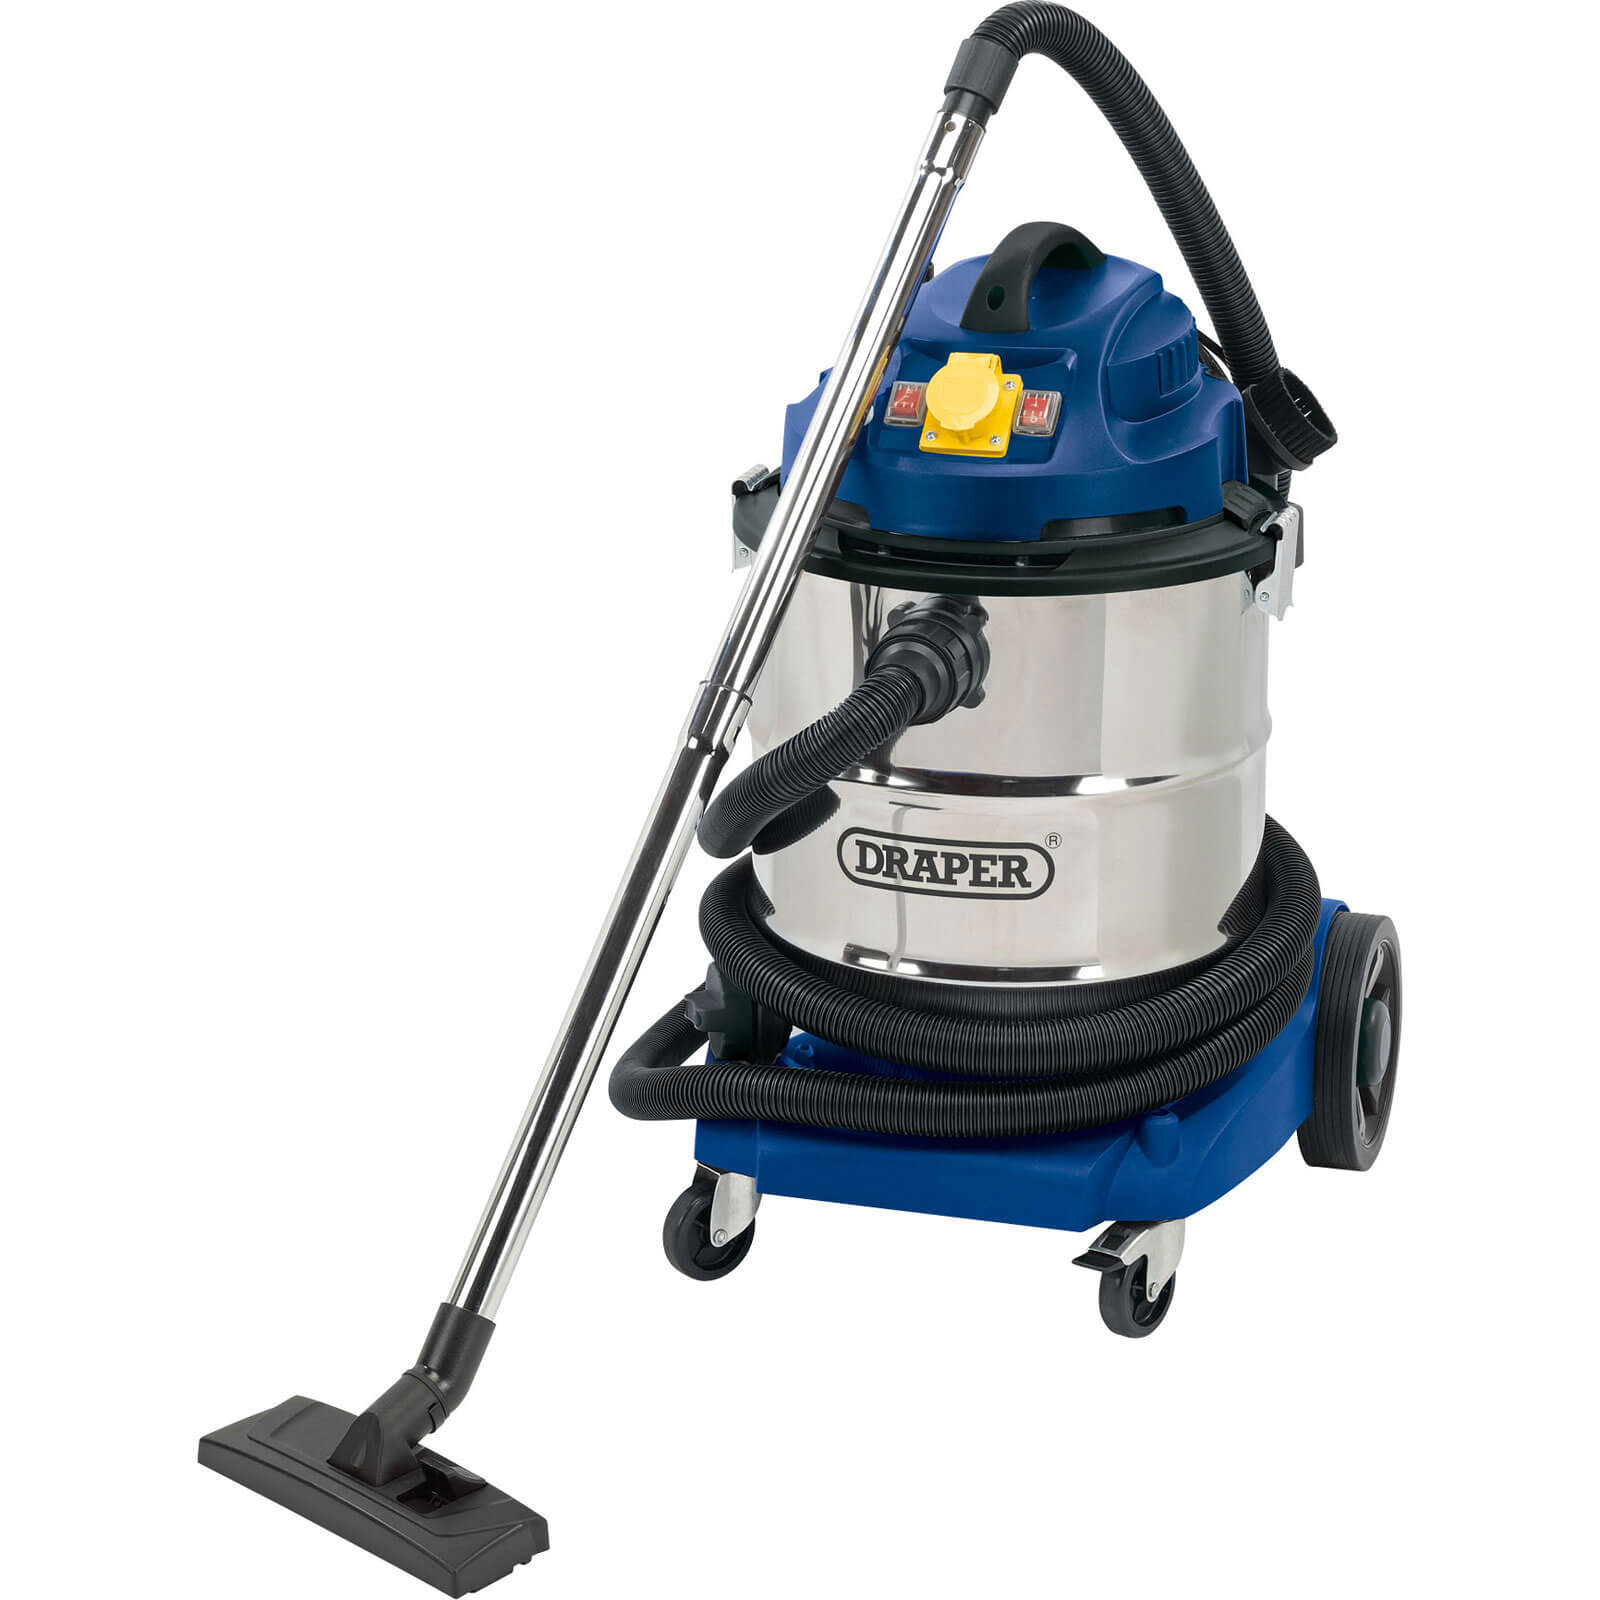 Image of Draper WDV50SS Wet and Dry Vacuum Cleaner 110v